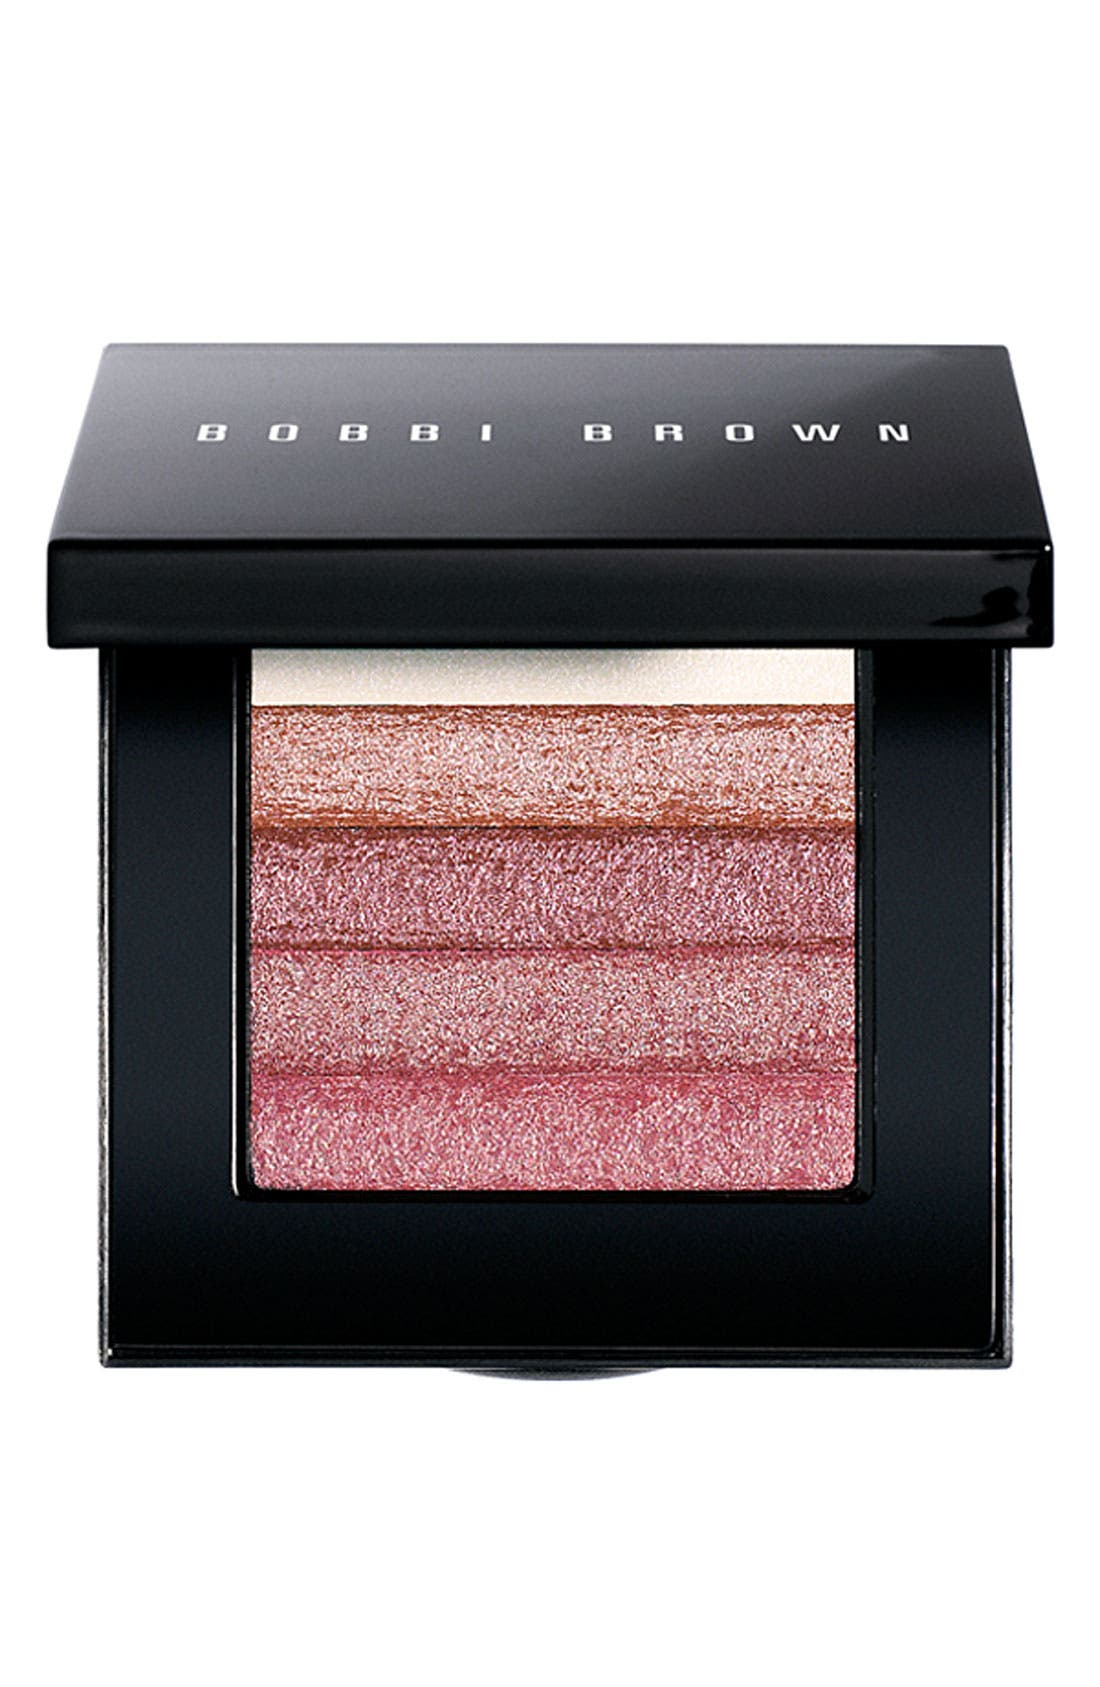 BOBBI BROWN,                             Shimmer Brick Highlighter Compact,                             Main thumbnail 1, color,                             ROSE